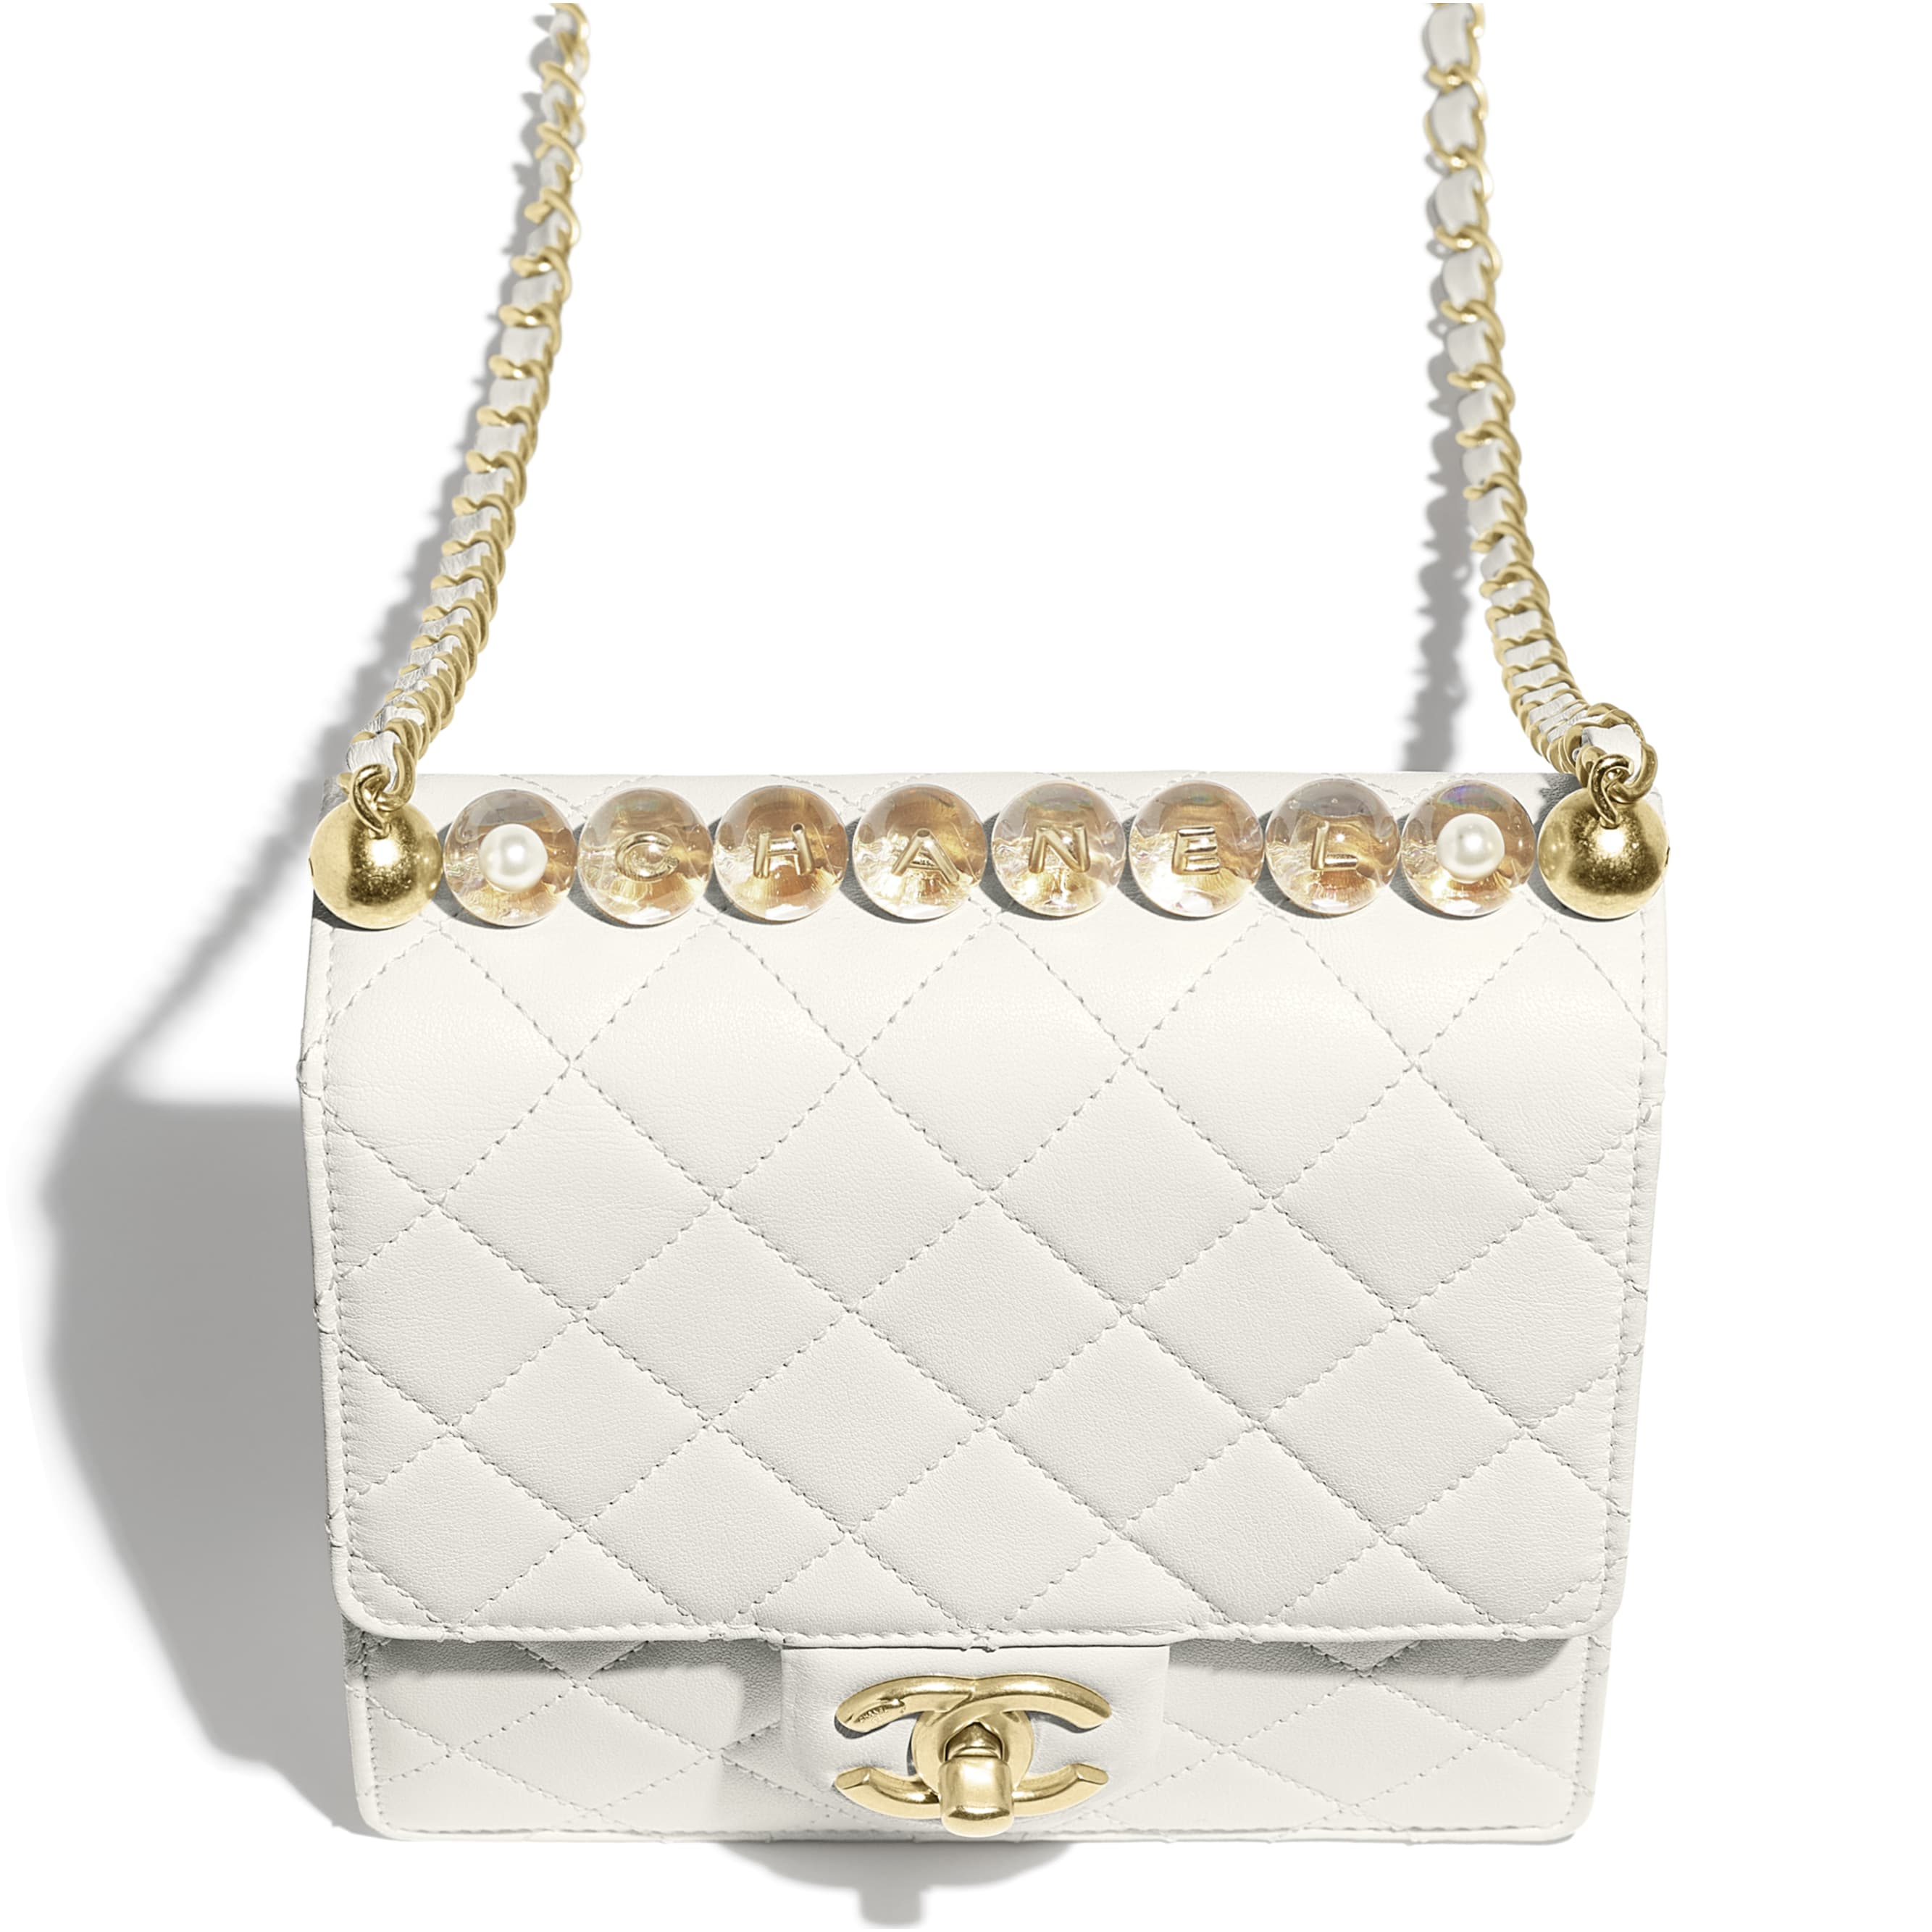 Flap Bag - White - Goatskin, Acrylic Beads & Gold-Tone Metal - Extra view - see standard sized version